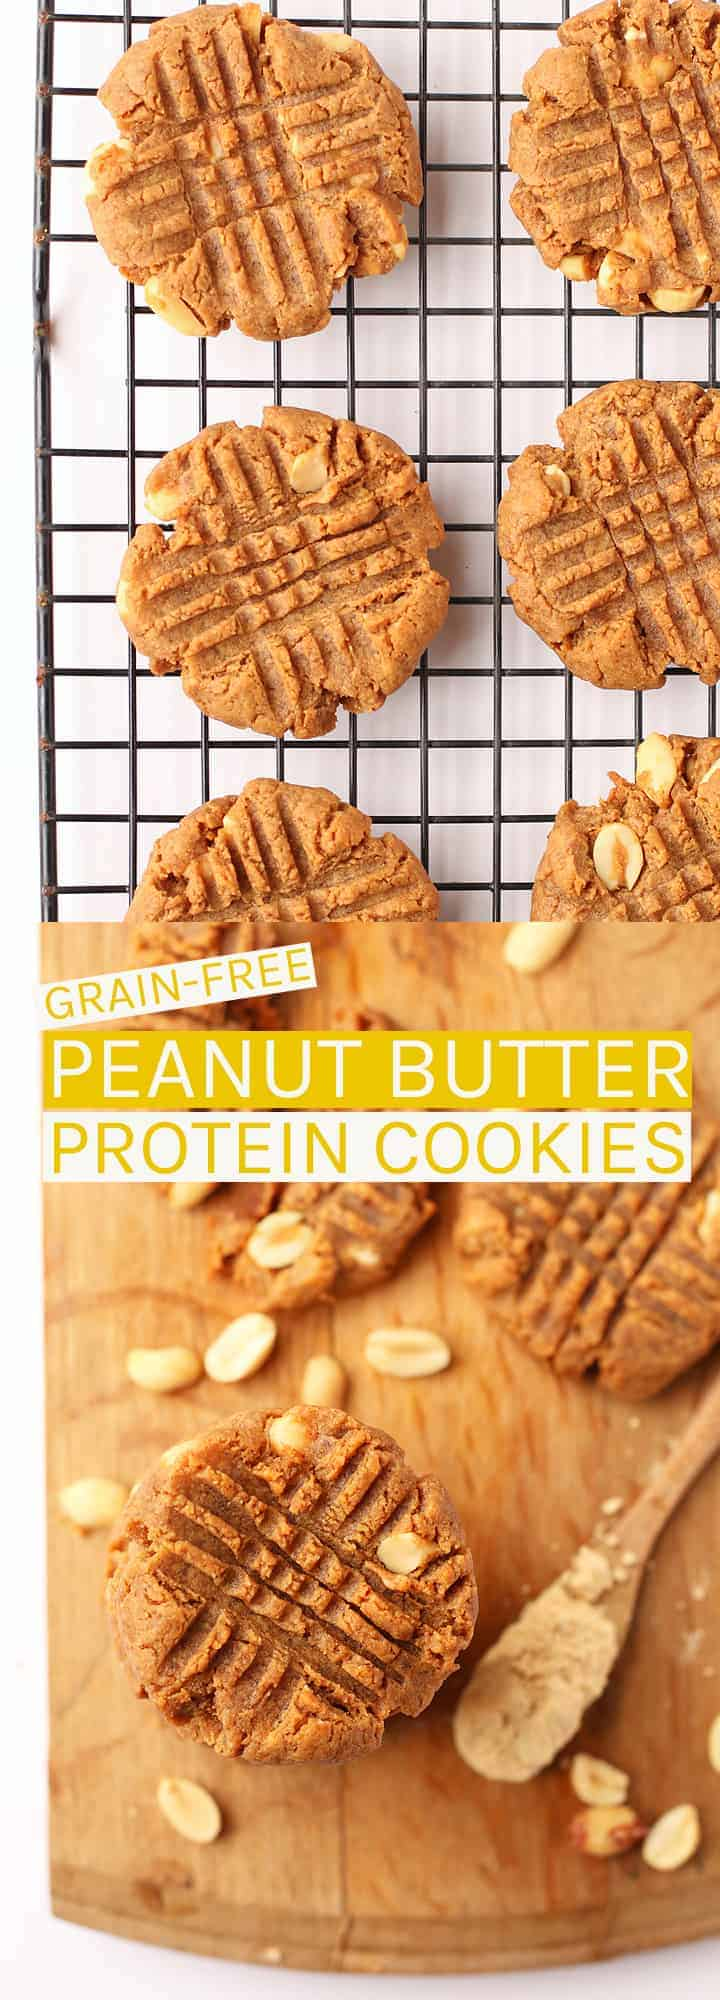 These vegan and gluten-free Peanut Butter Protein Cookies are made with just 6 ingredients, one bowl, and under 20 minutes for a satisfying grain-free midday snack. #vegan #glutenfree #grainfree